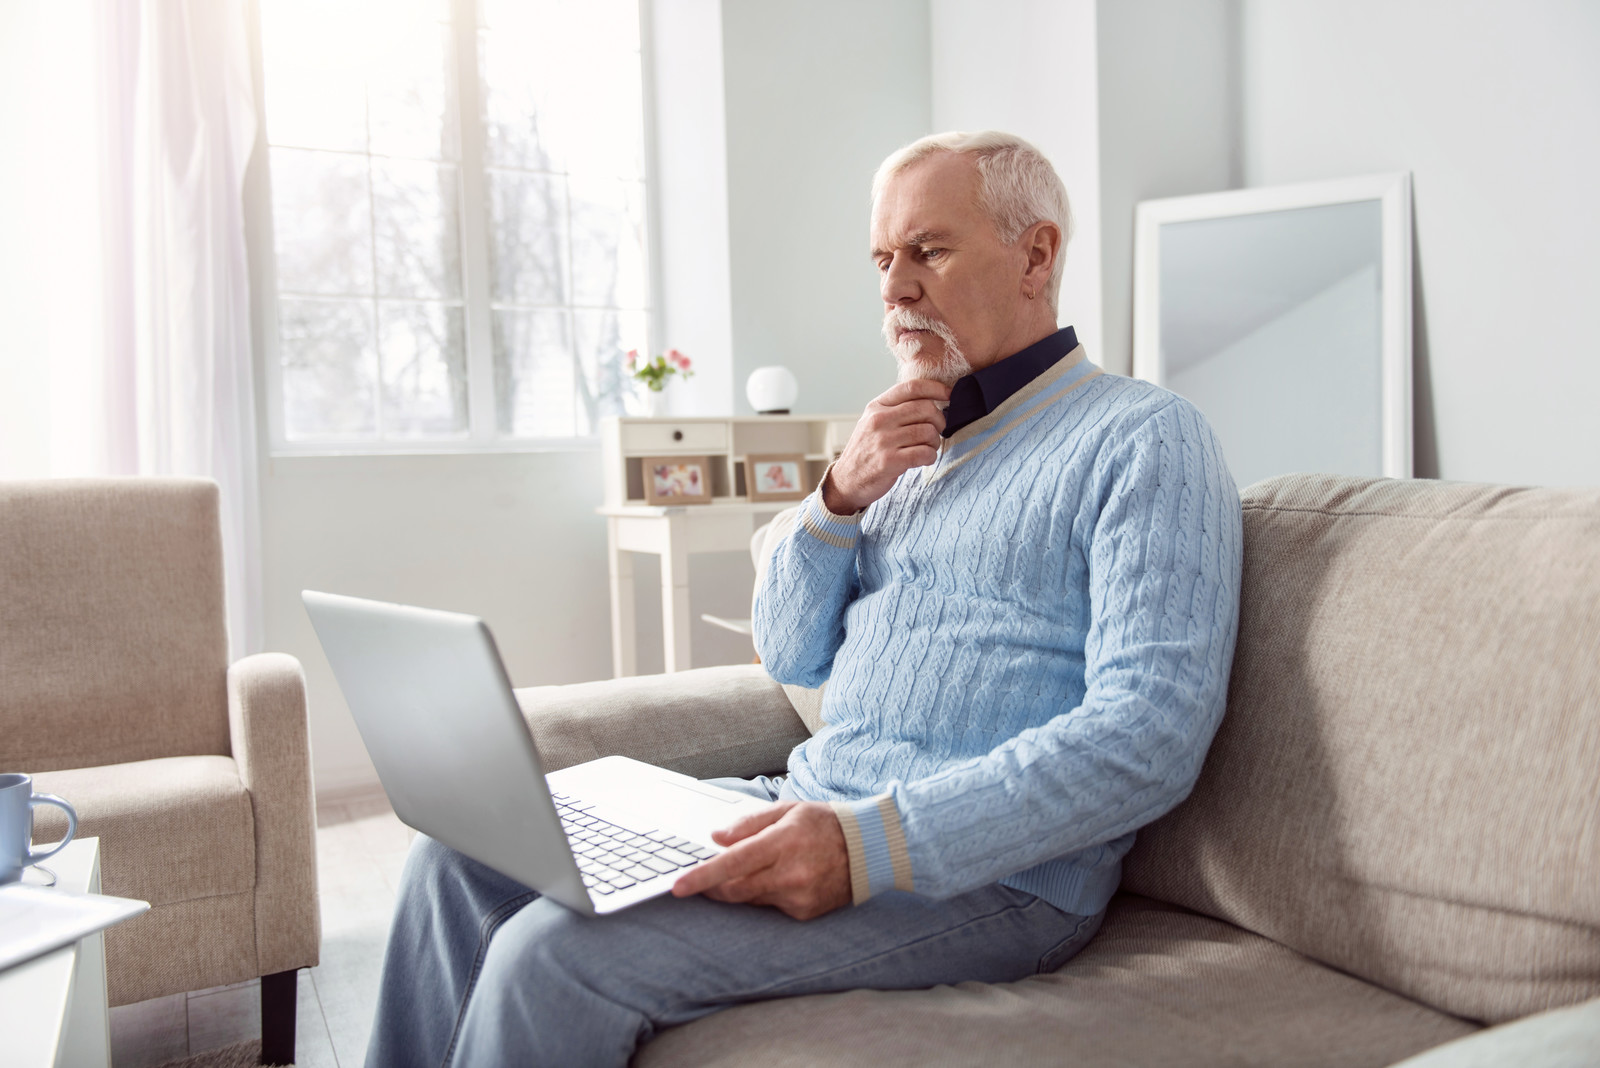 Senior man sitting on the couch and reading from the laptop scratching his chin, with a concerned look on his face